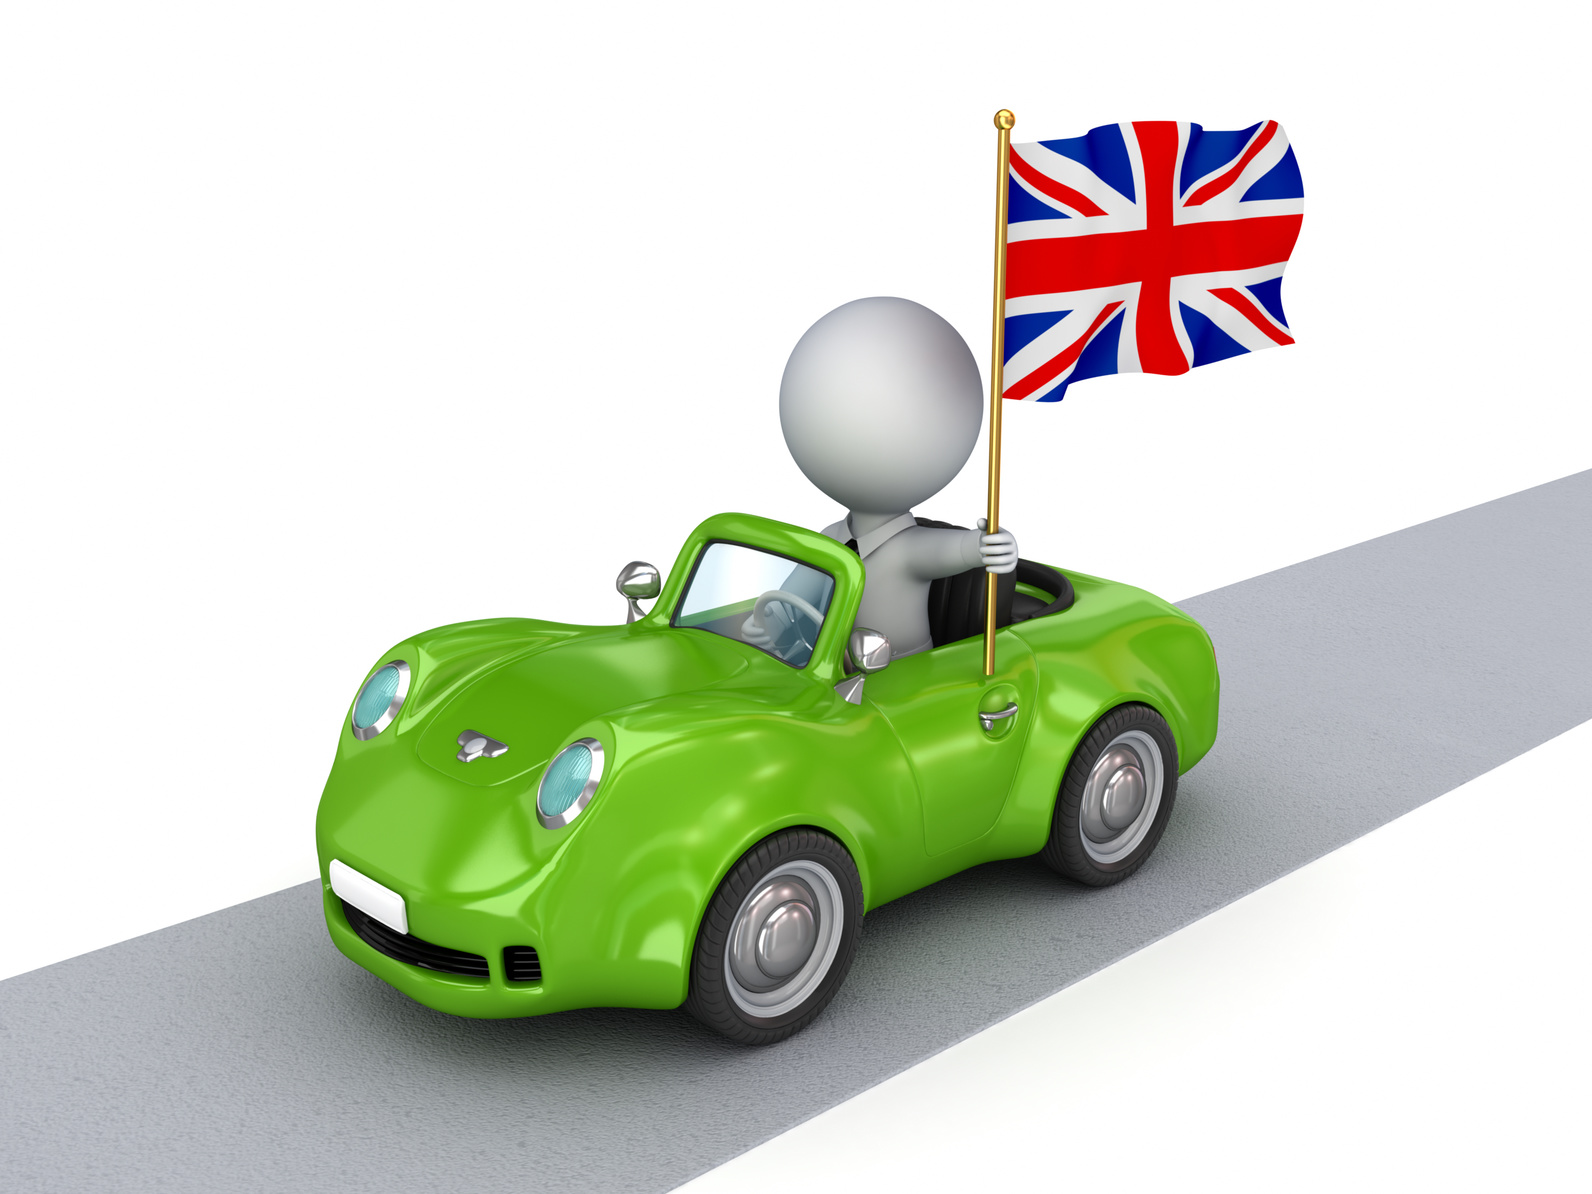 A cartoon image of a used car in west midlands flying a flag